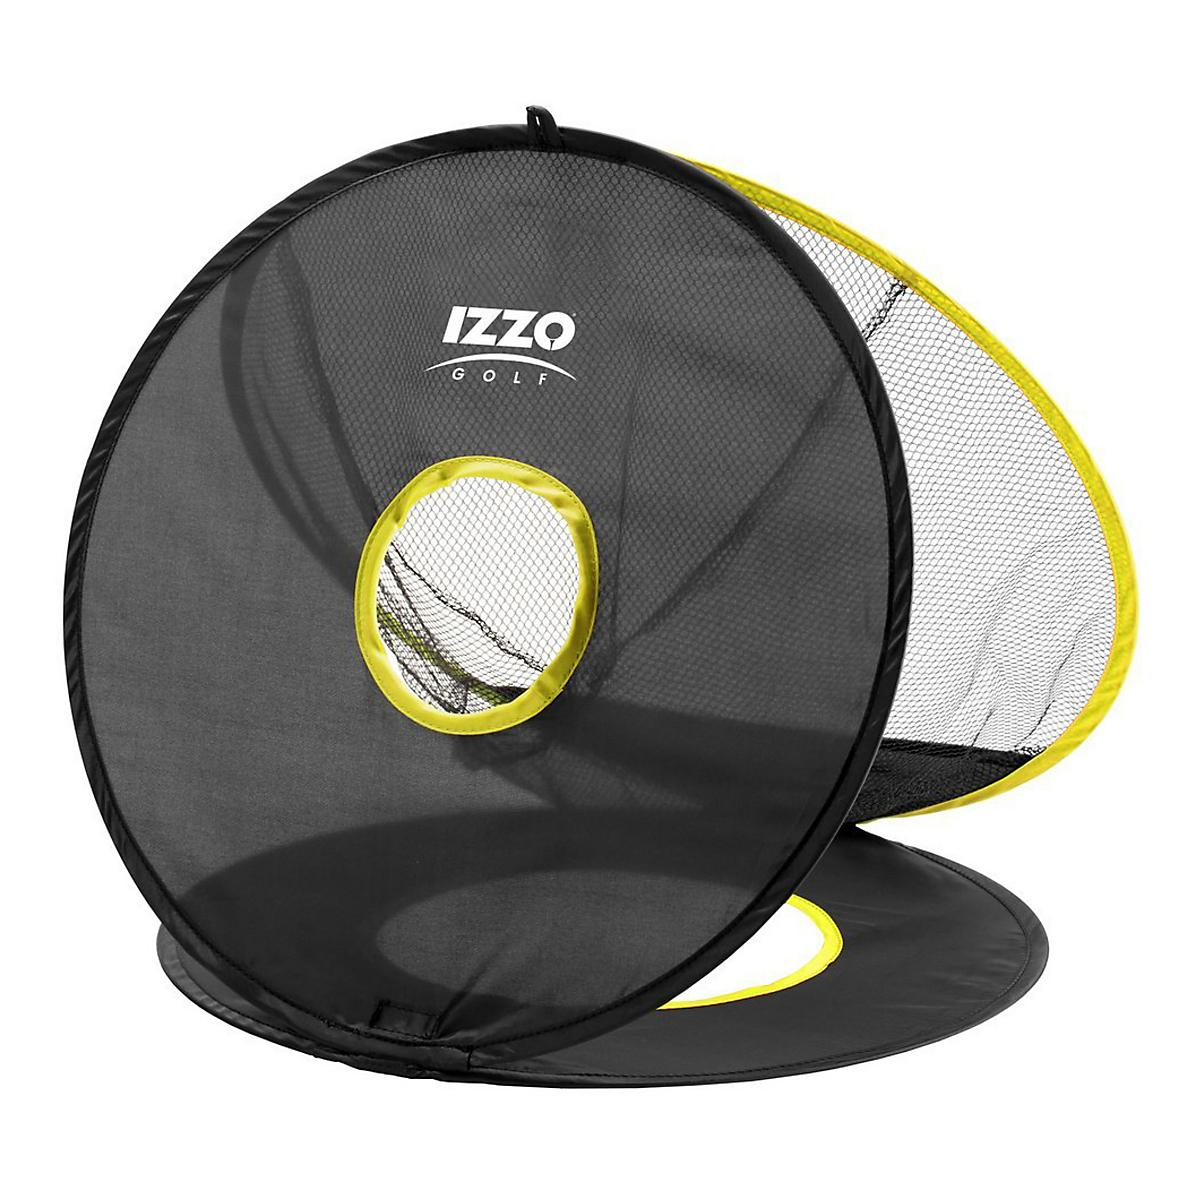 Izzo Golf�Triple Chip Chipping Net